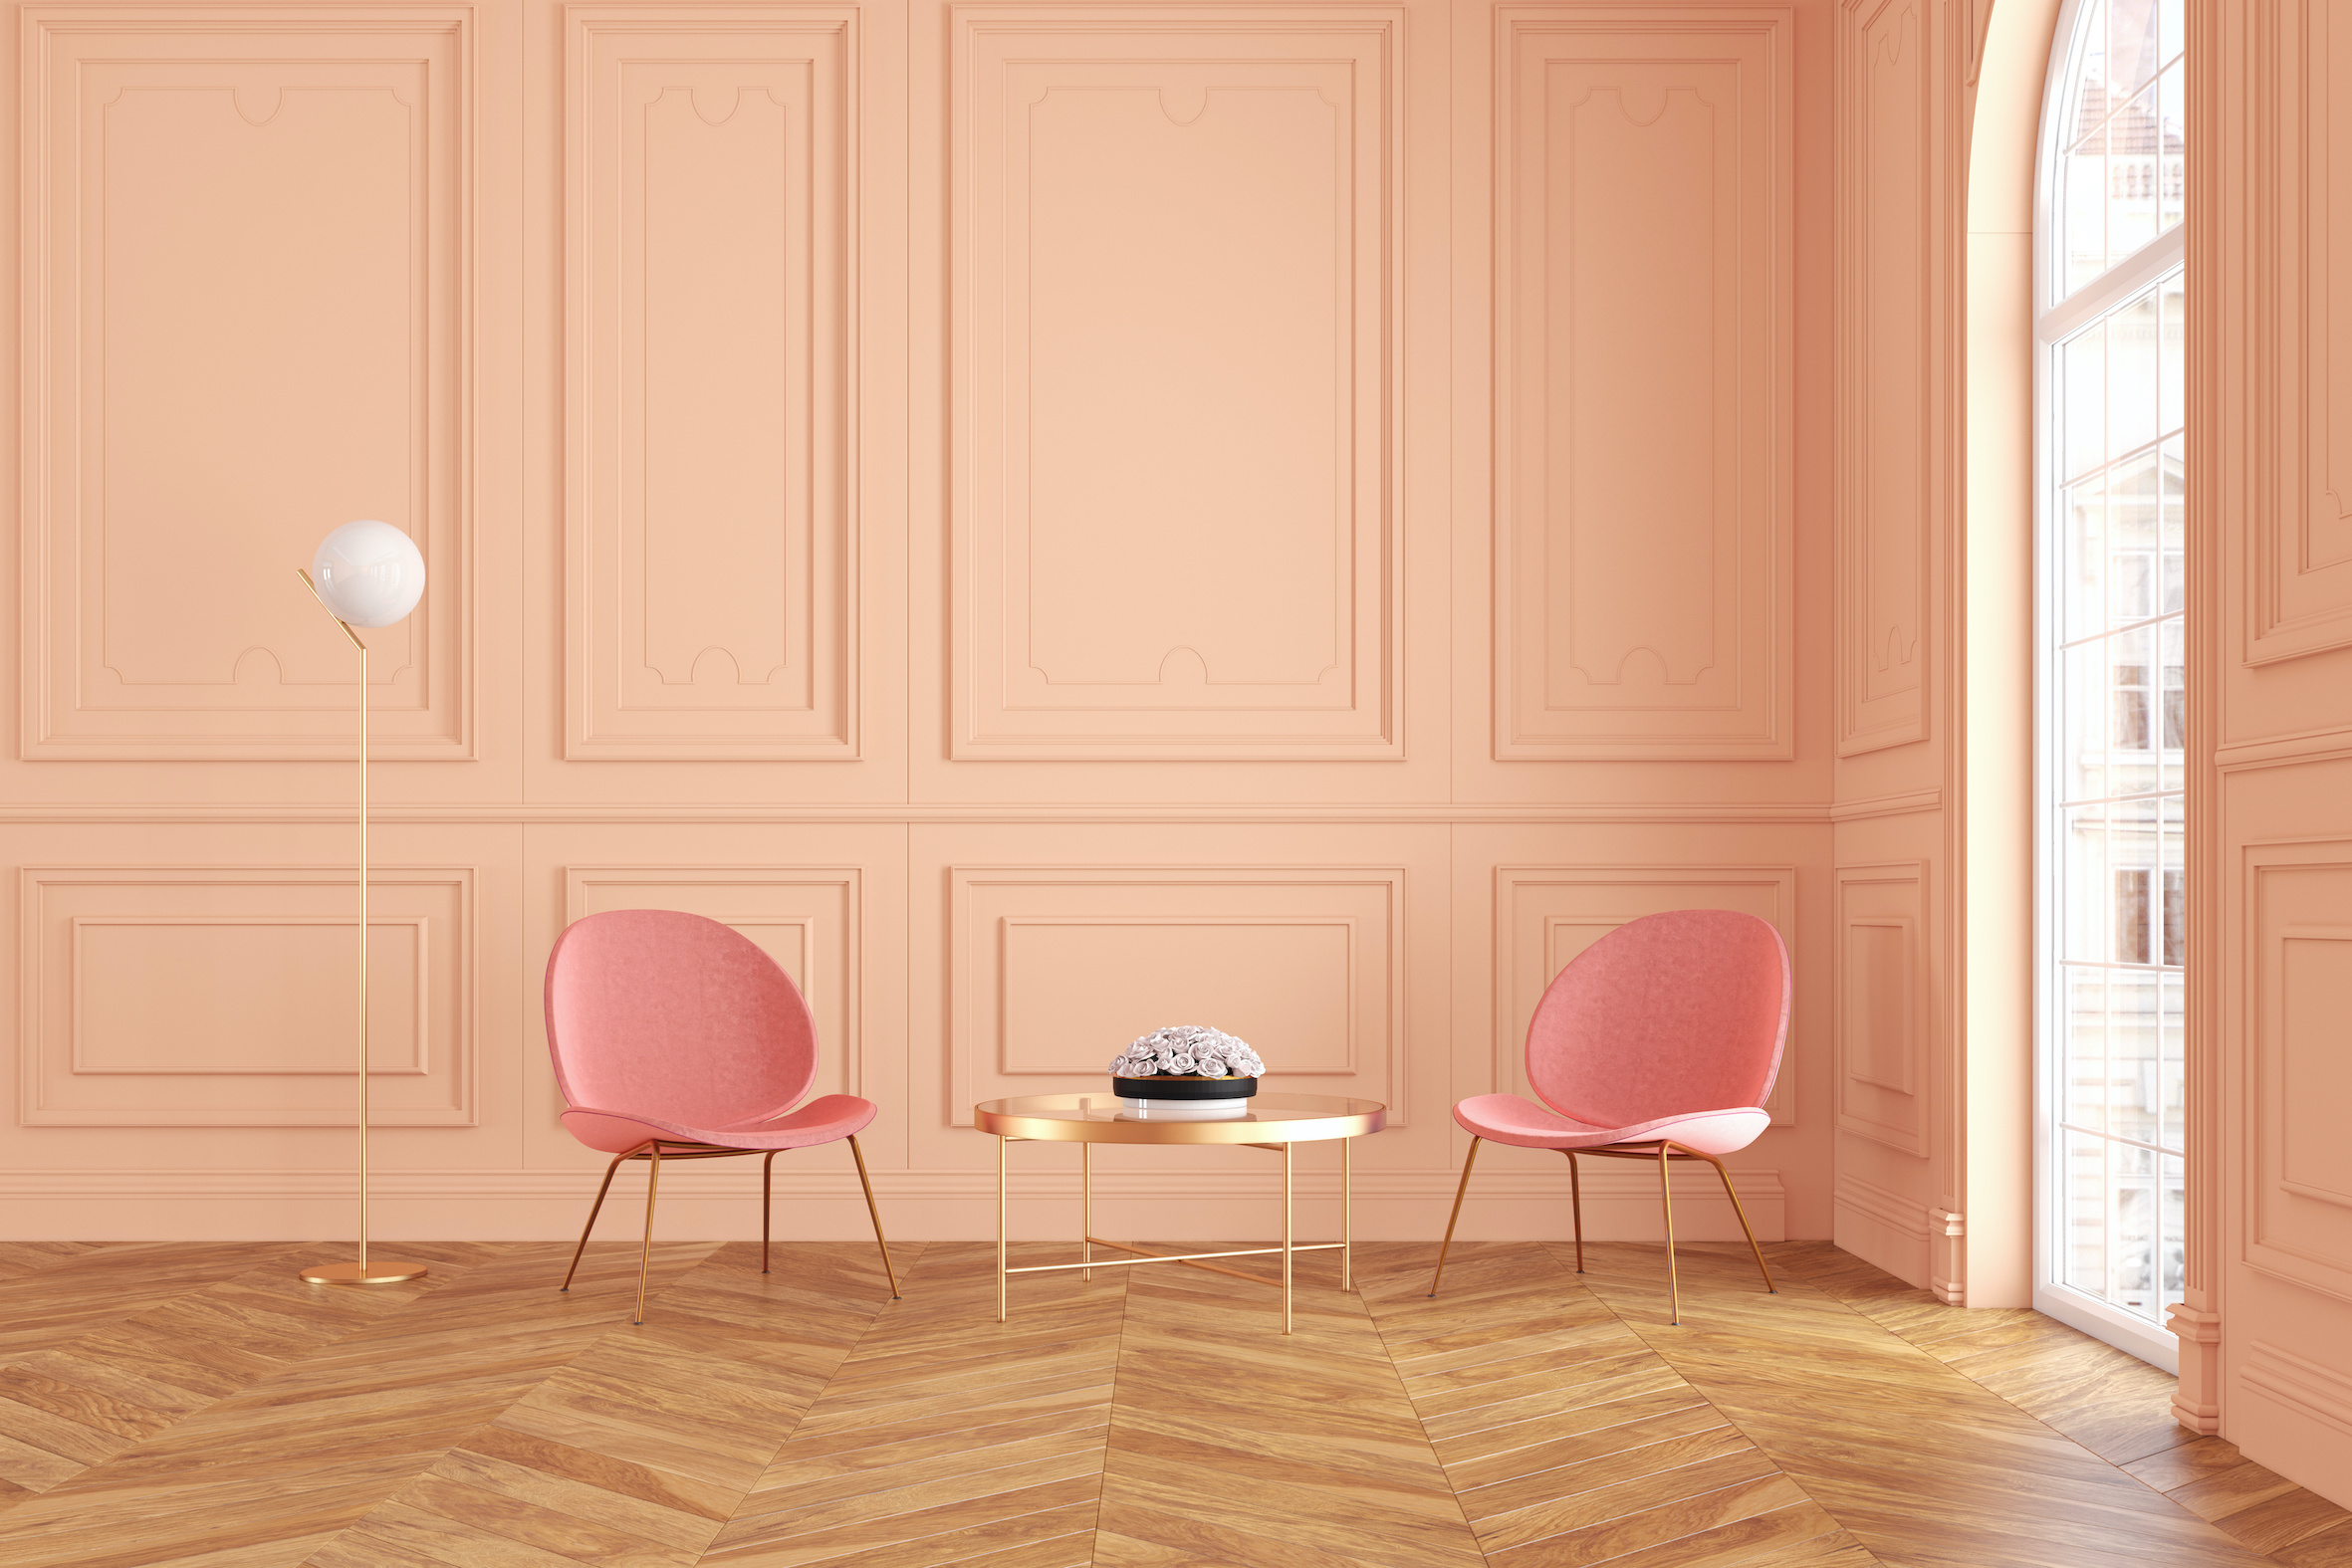 two chairs in a room